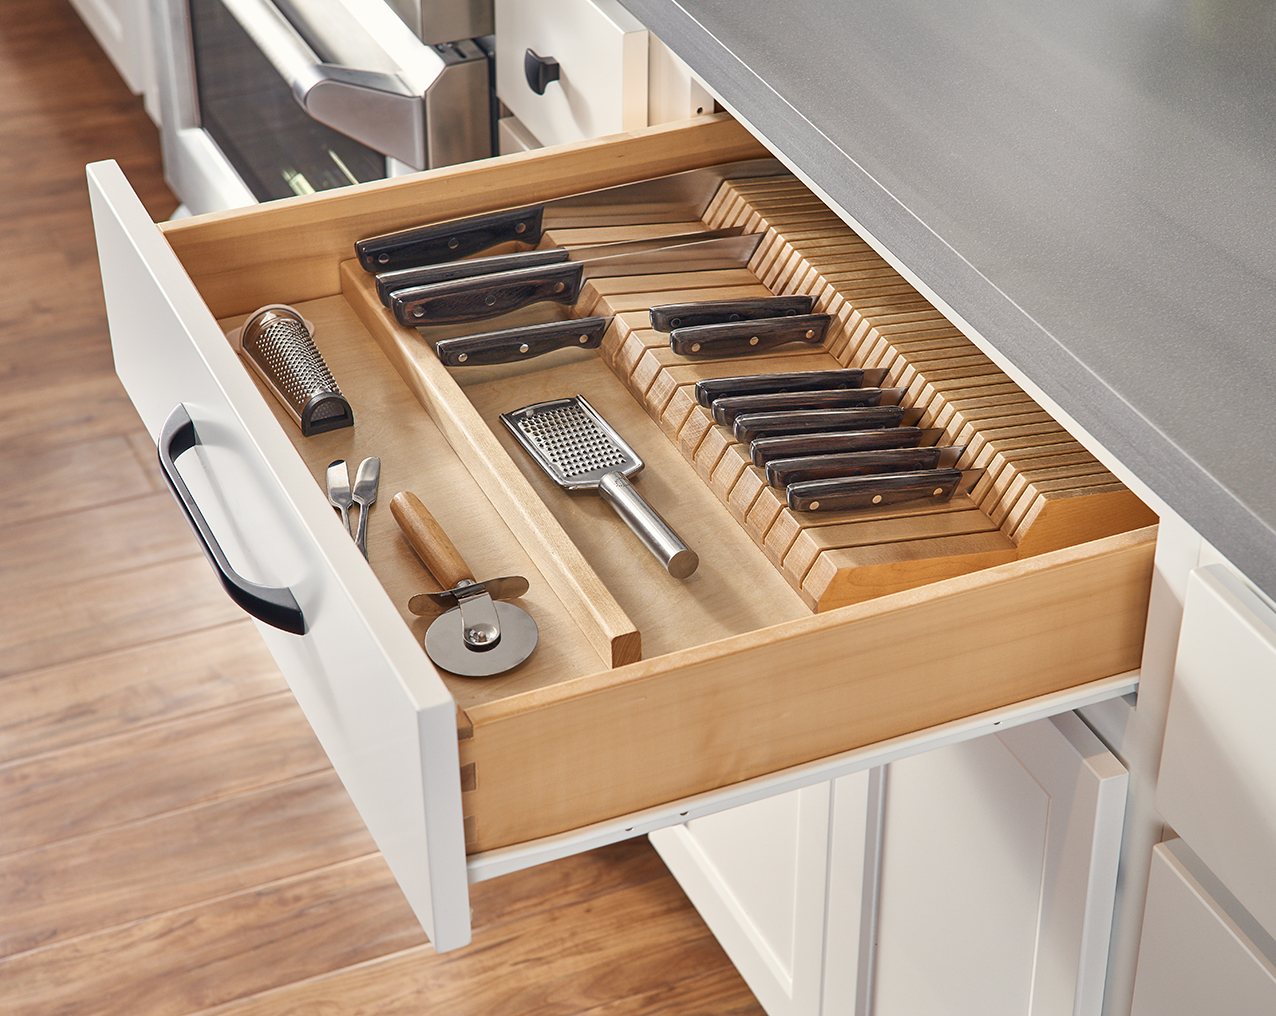 White Cabinet Drawer with Knife Storage